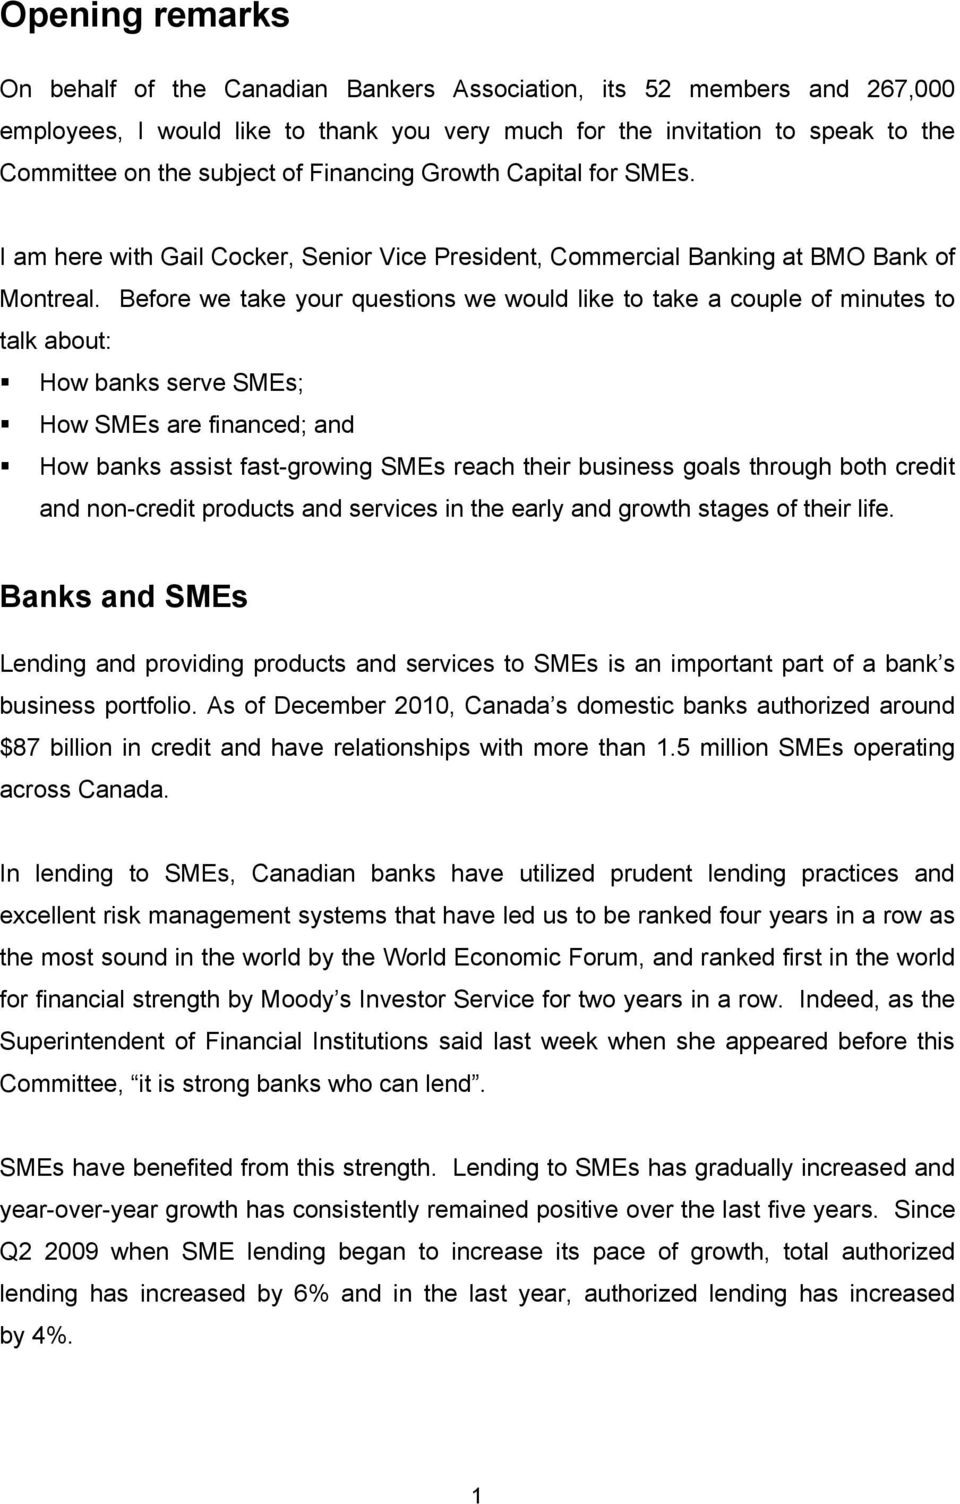 Before we take your questions we would like to take a couple of minutes to talk about: How banks serve SMEs; How SMEs are financed; and How banks assist fast-growing SMEs reach their business goals